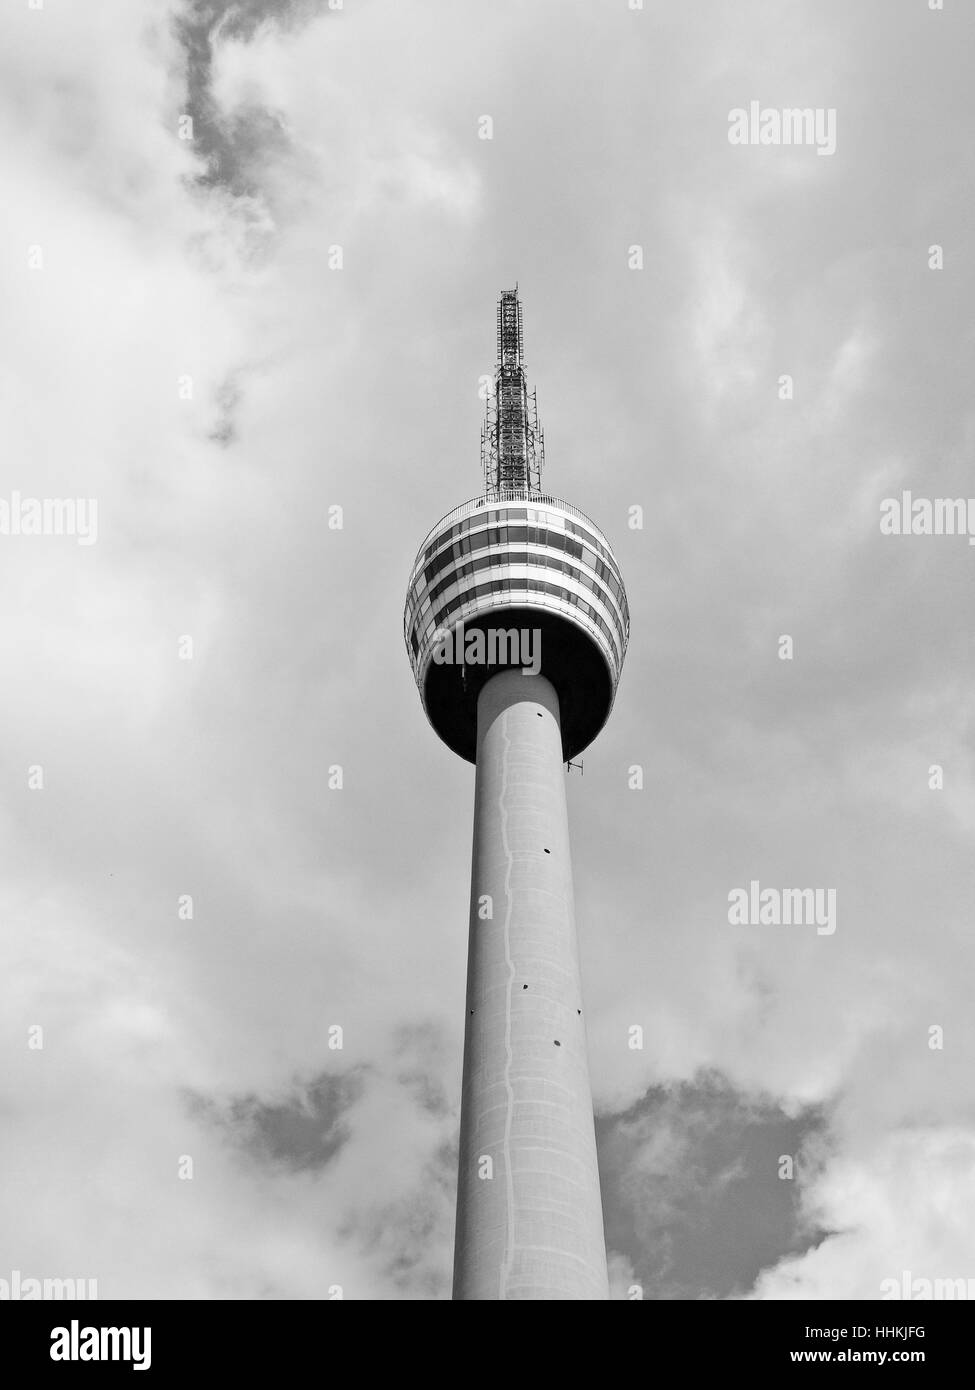 blank, european, caucasian, europe, style of construction, architecture, - Stock Image